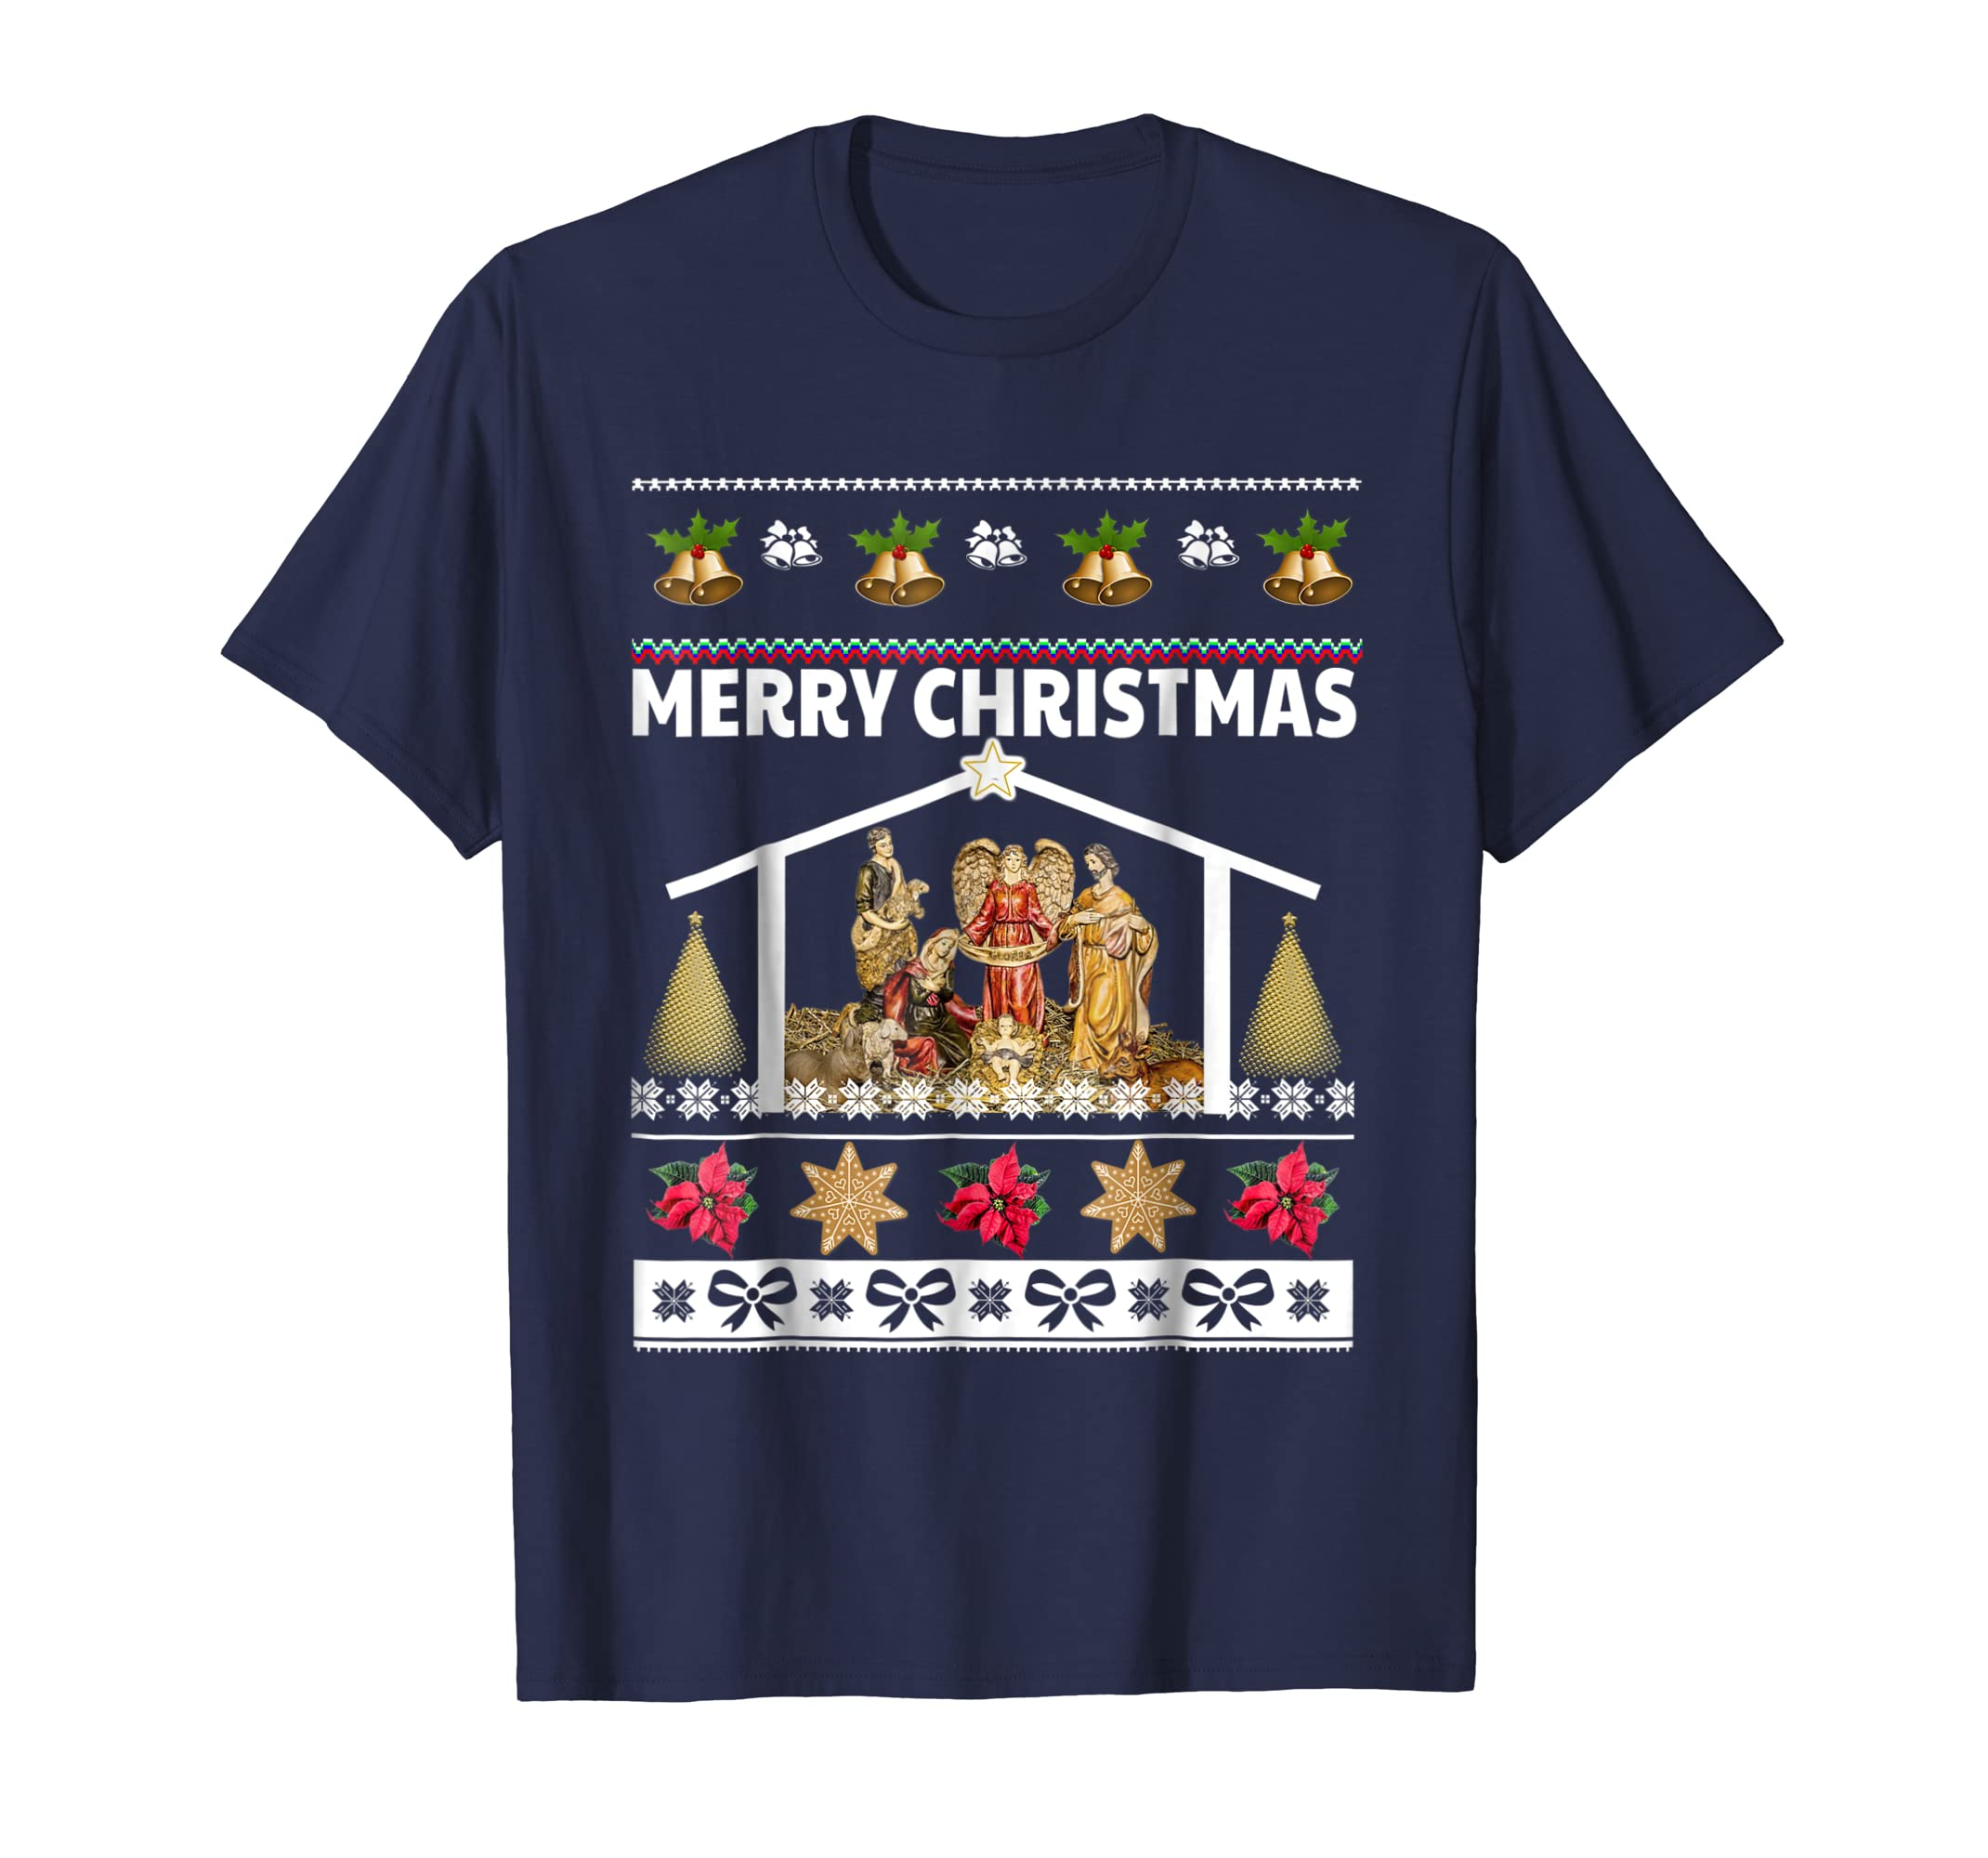 Merry Christmas Nativity Scene Shirt Jesus Christ Manger-azvn